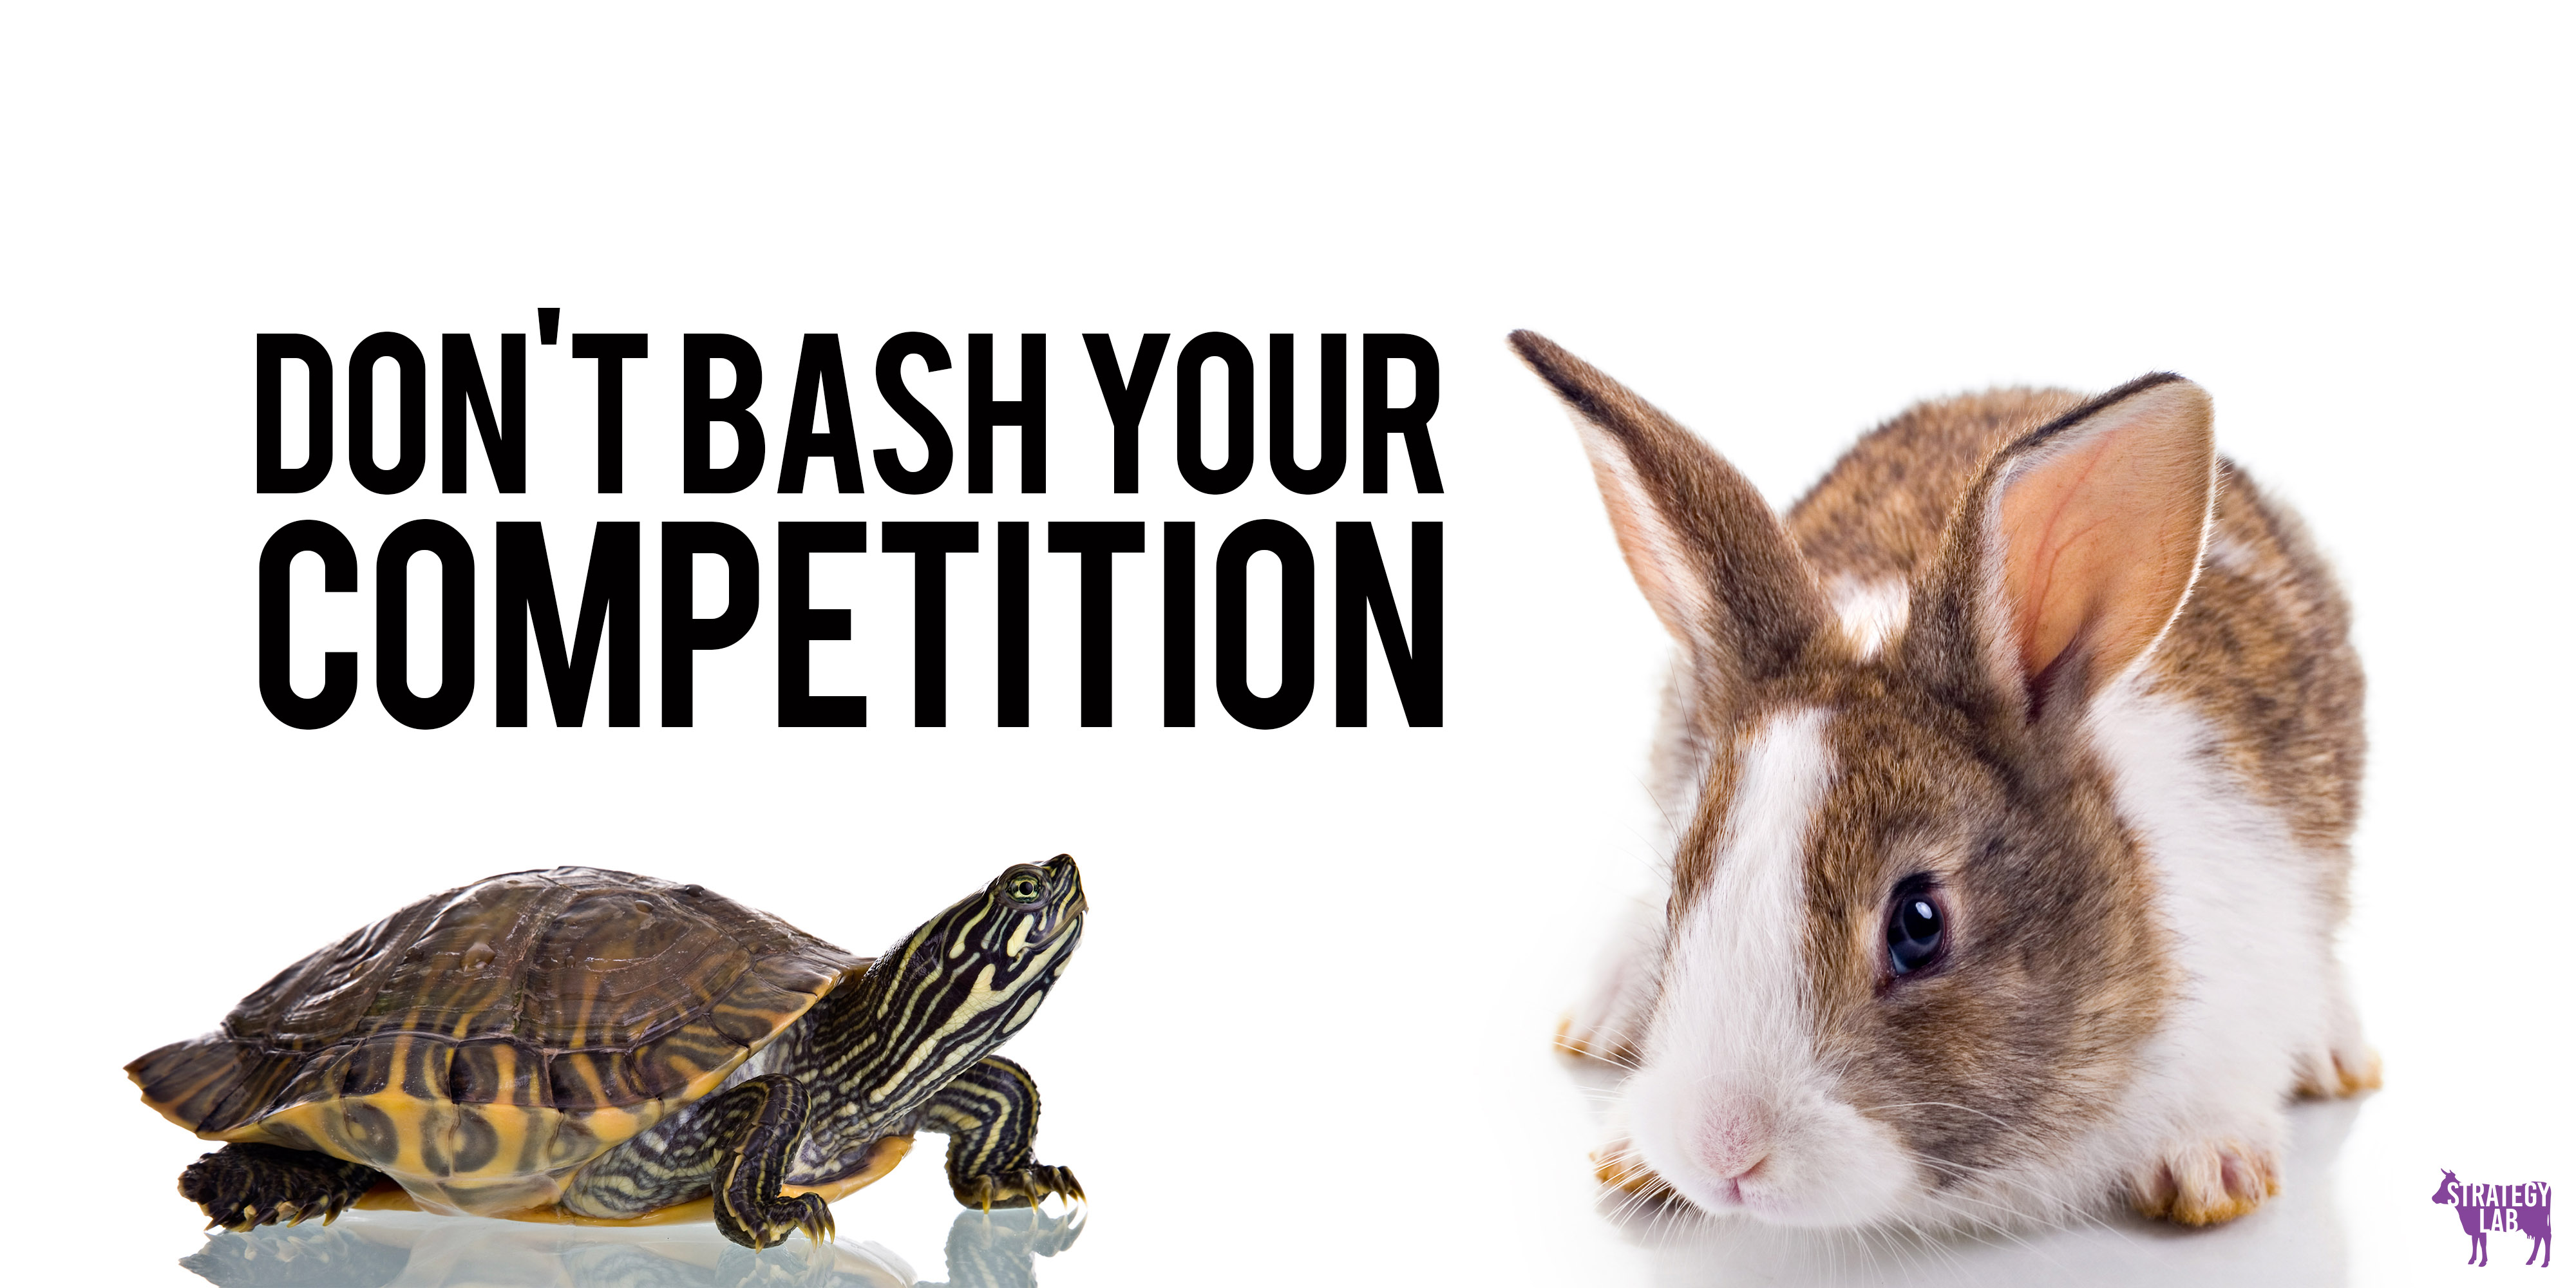 Don't bash your competition